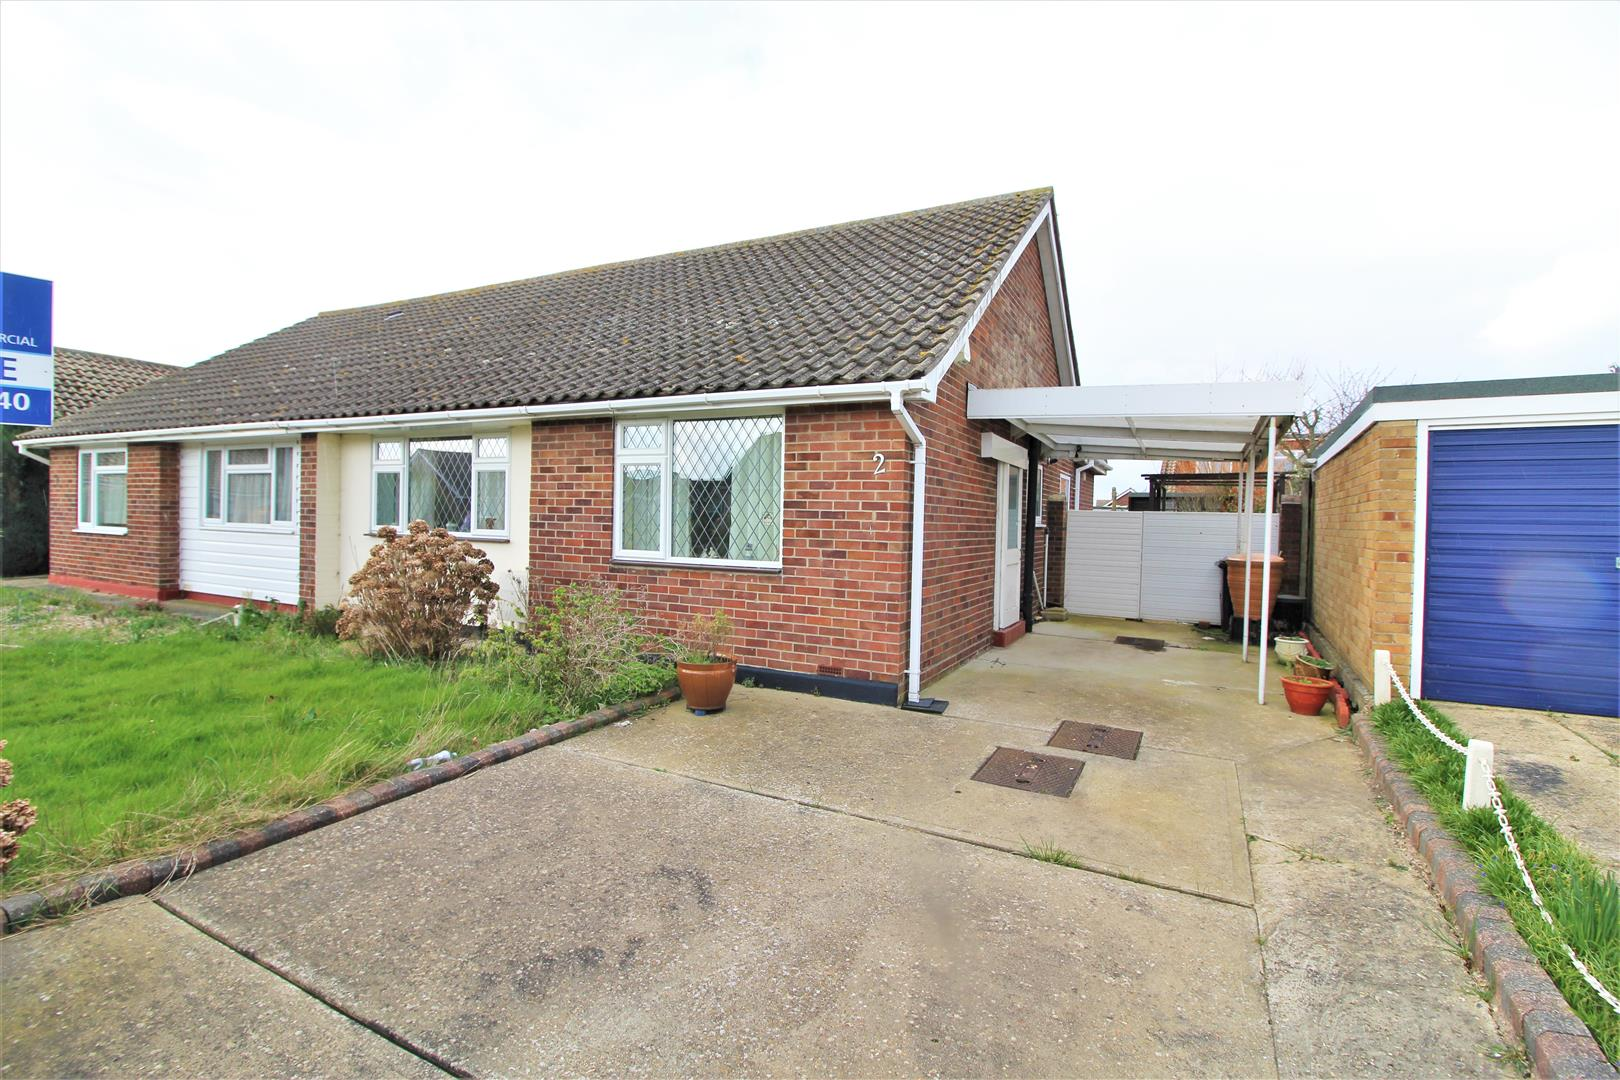 Sycamore Way, Kirby Cross, Essex, CO13 0QW